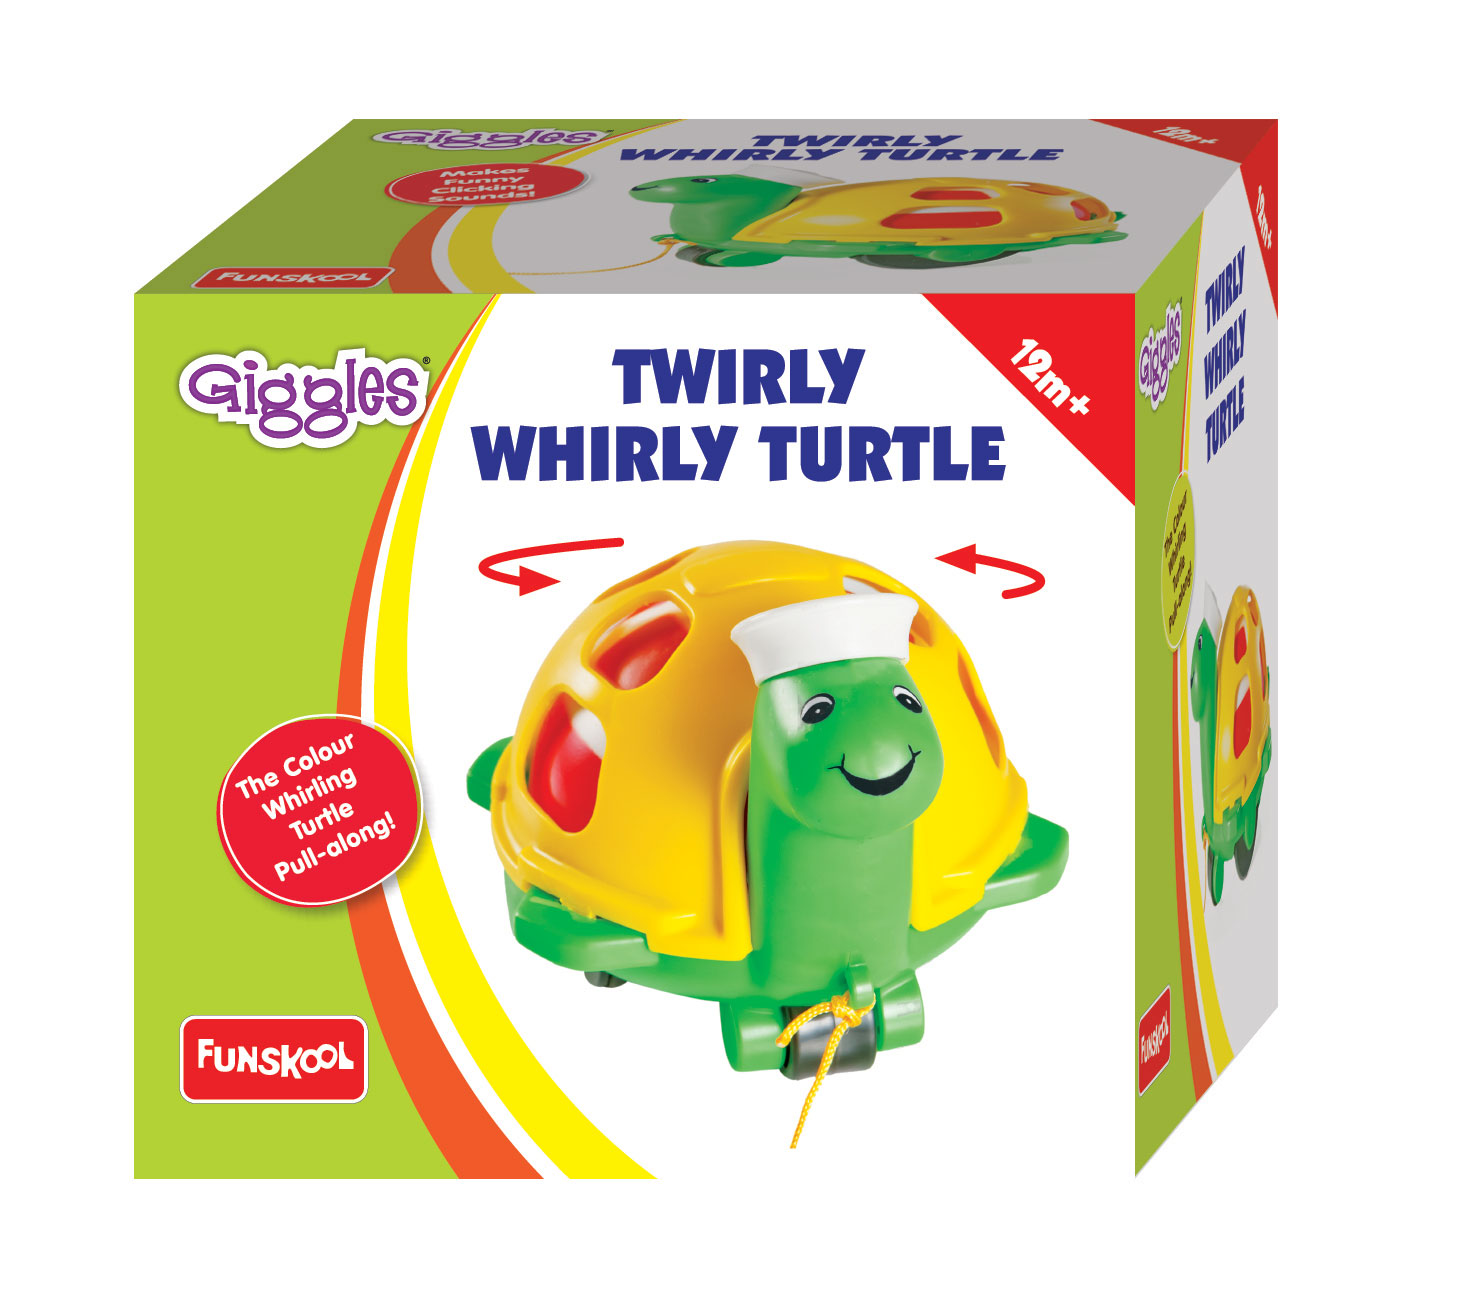 Twirlly Whirlly Turtle